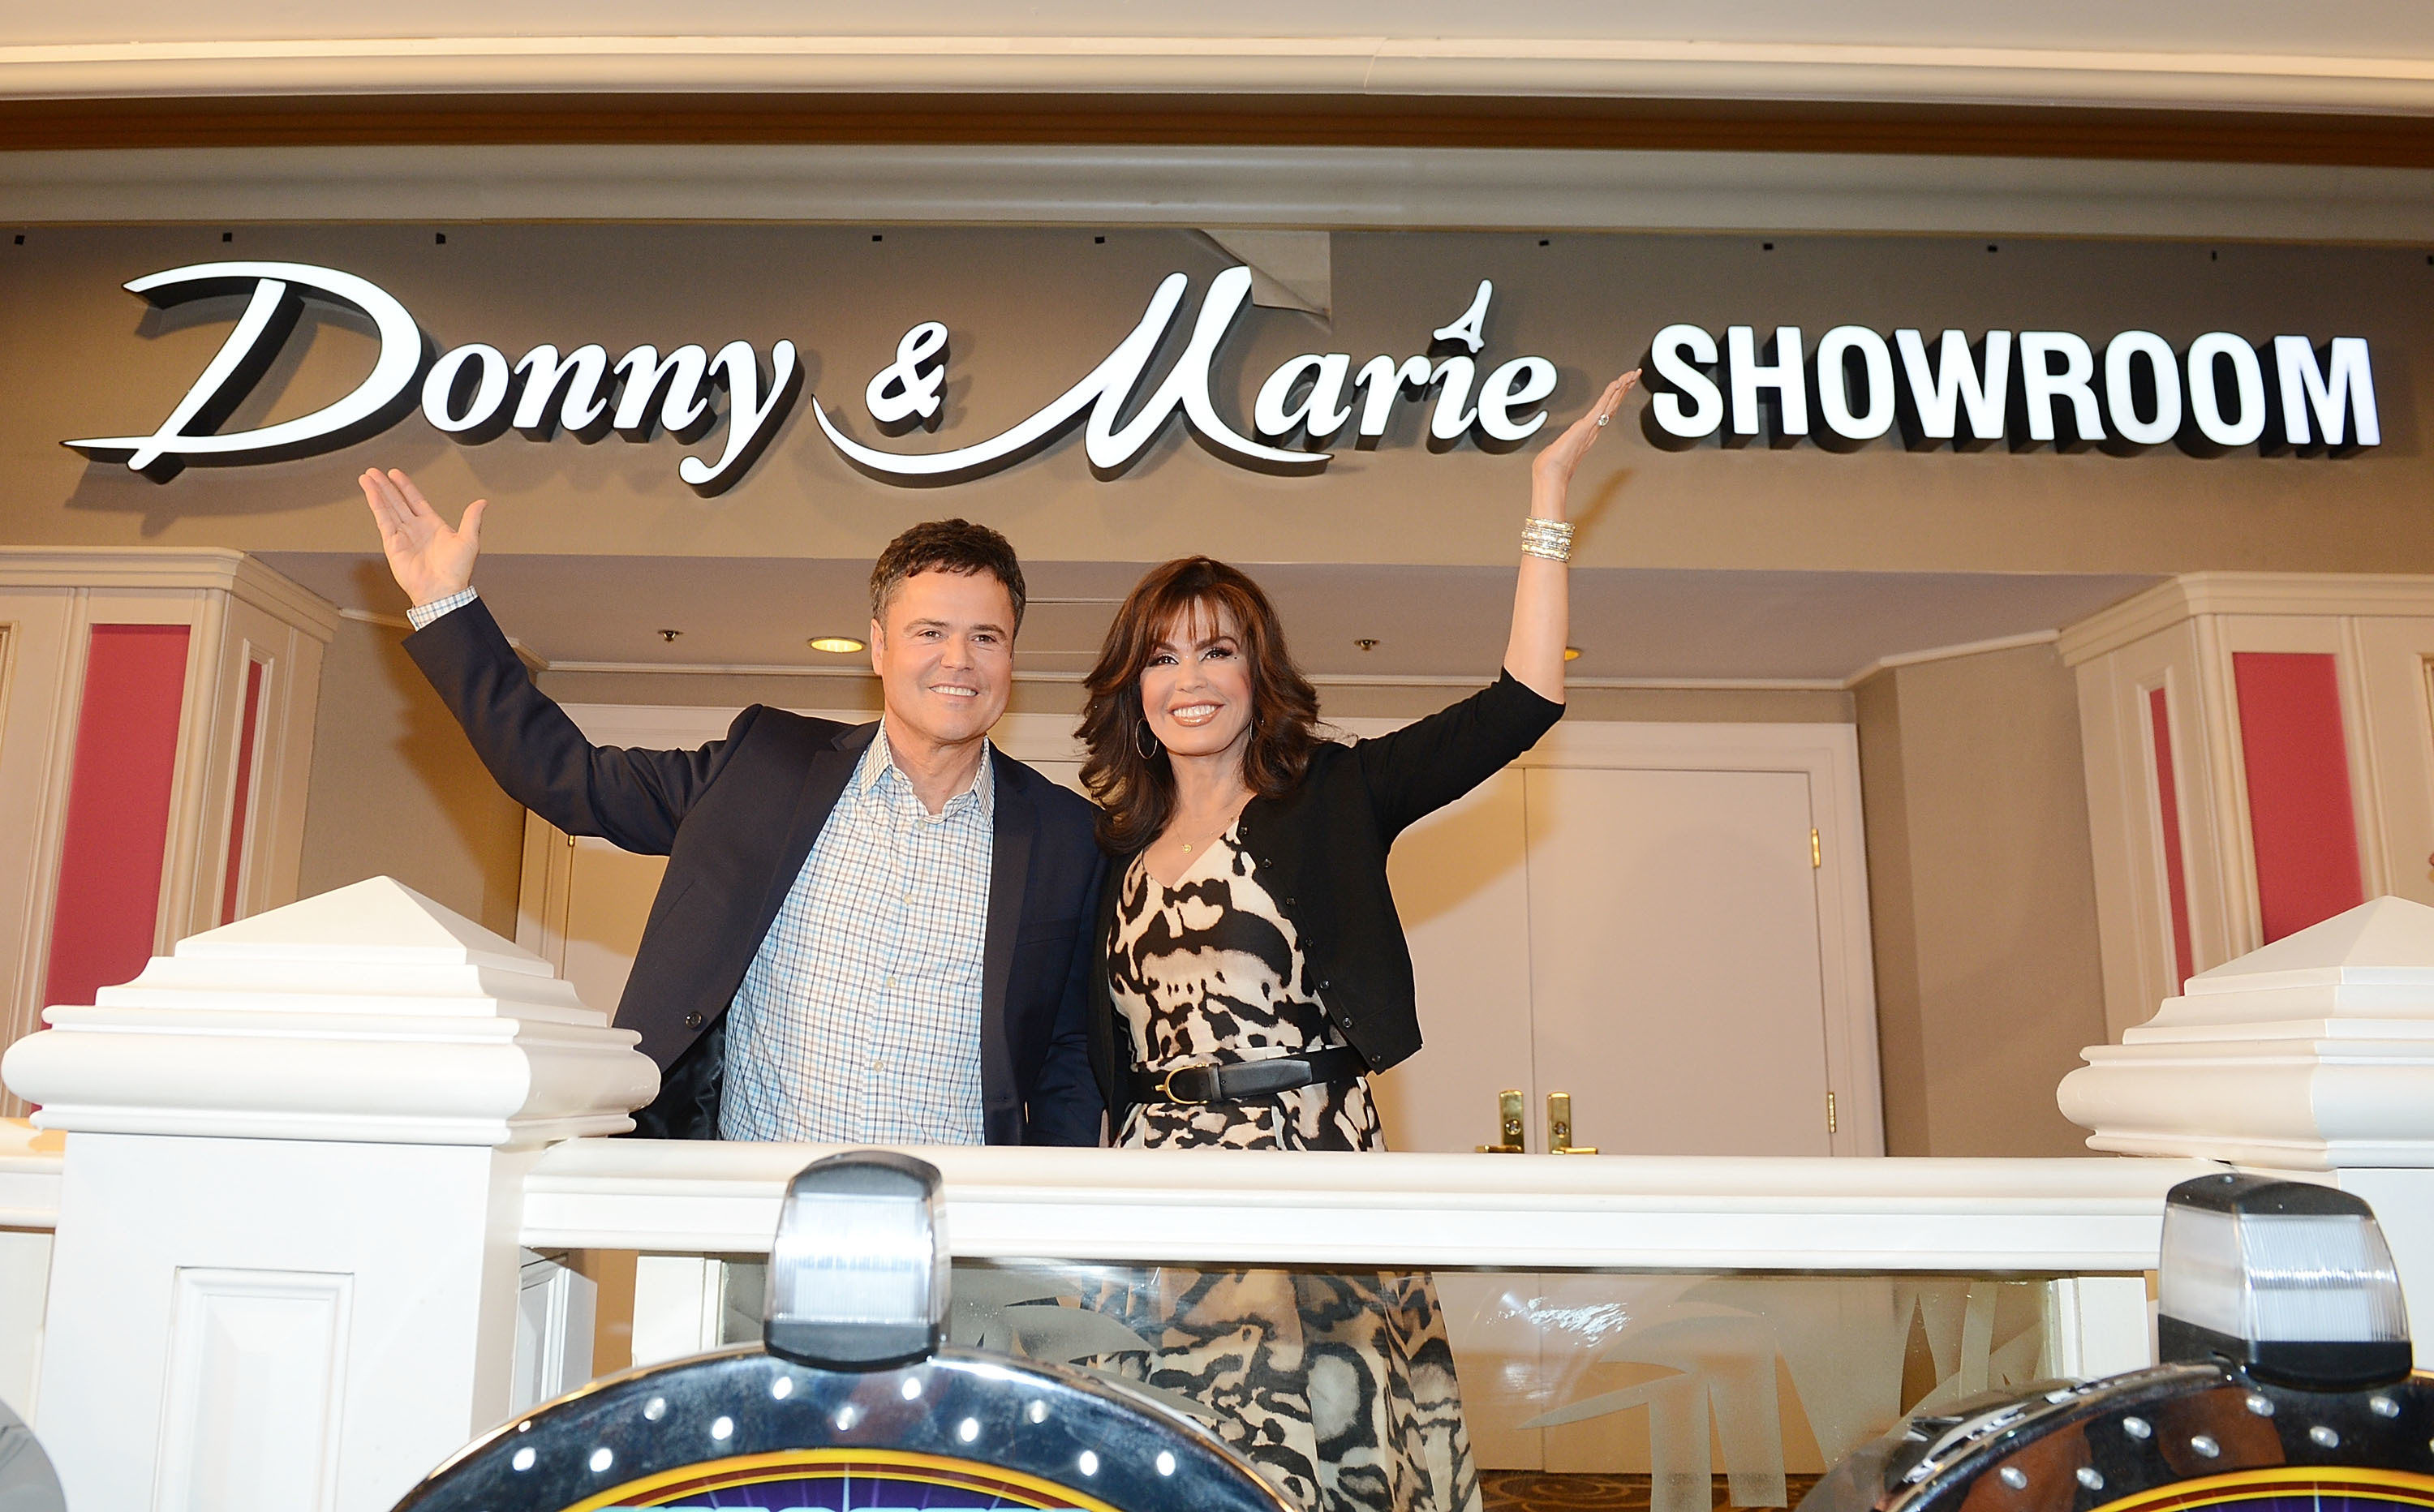 Charitybuzz Live Bid Meet Donny And Marie With 2 Tickets To Their